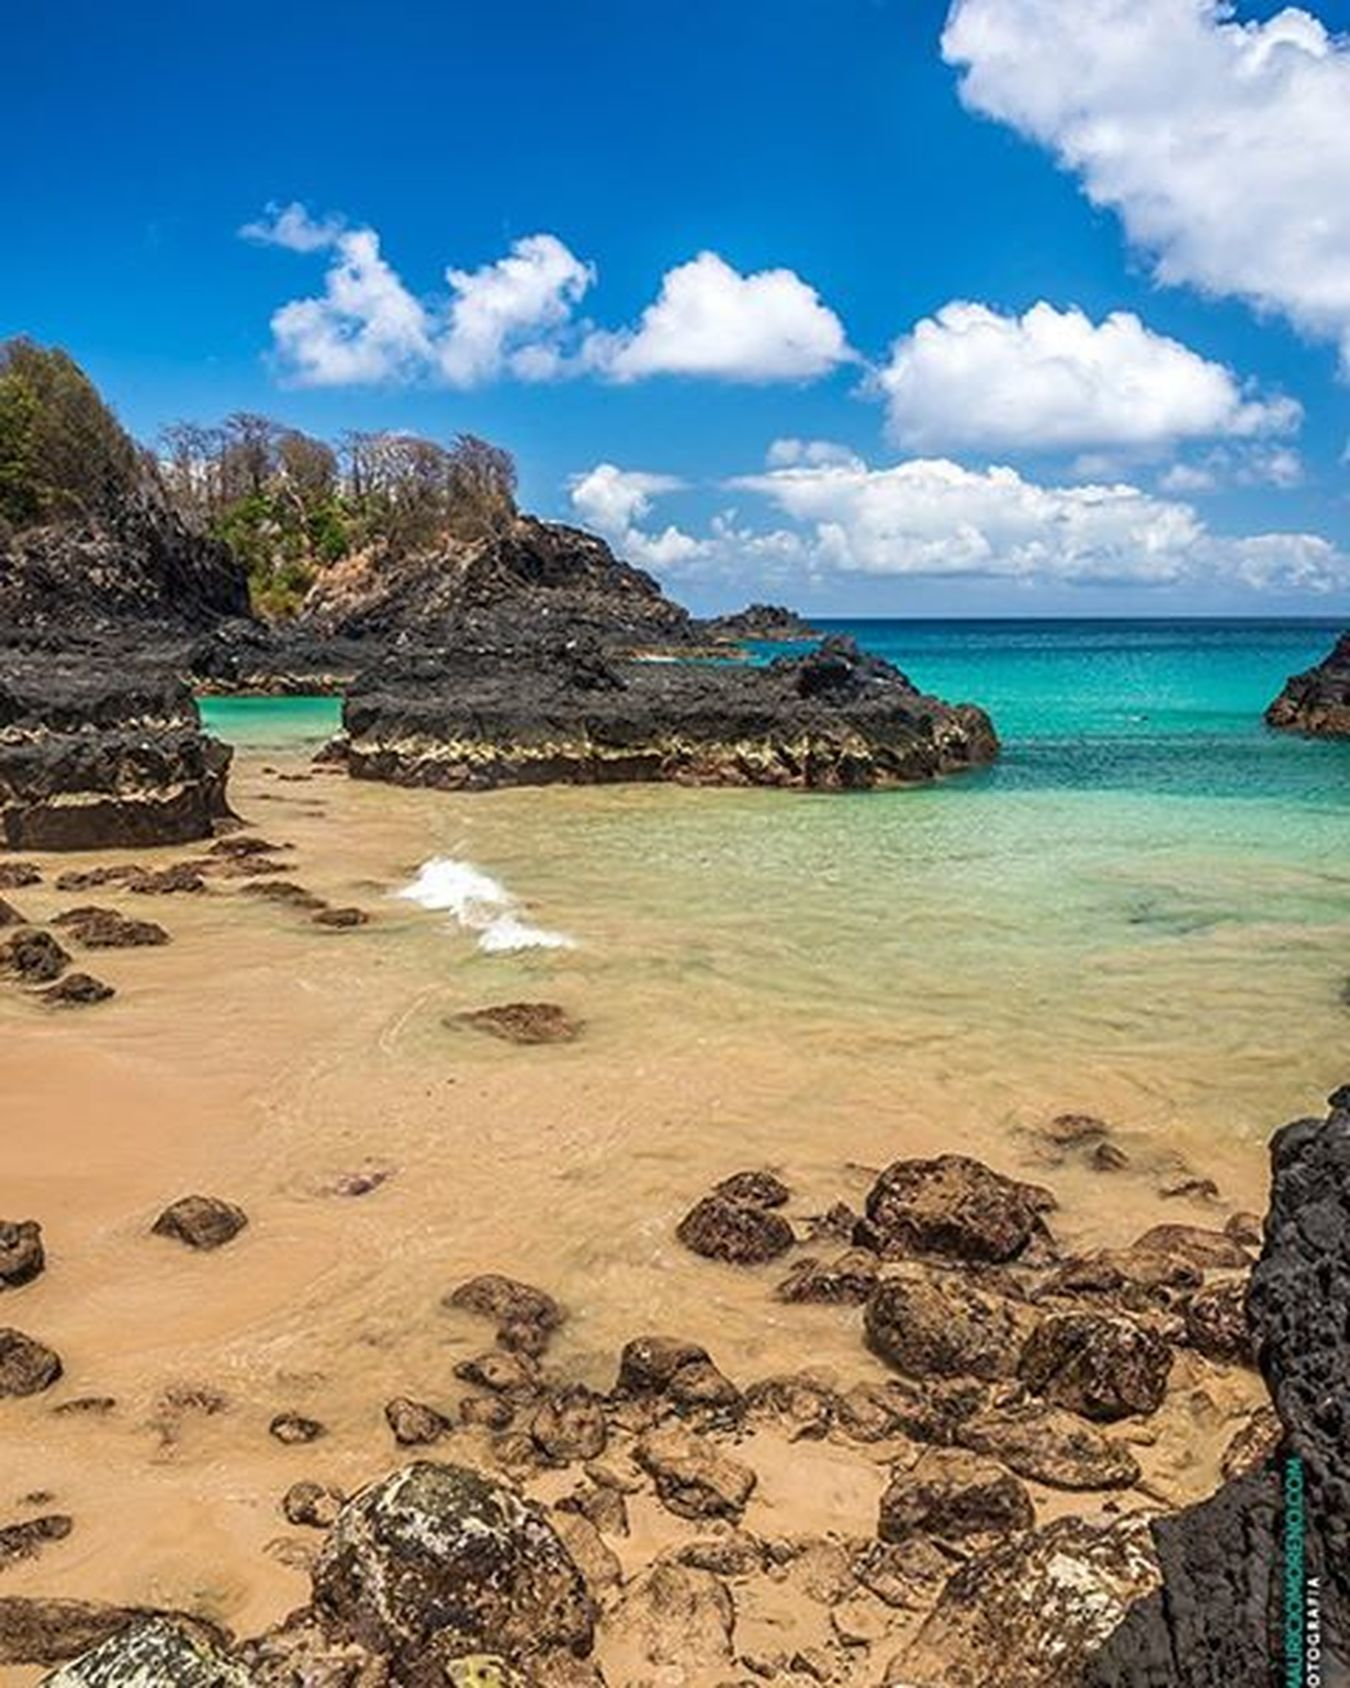 Praia dos Porcos, Fernando de Noronha - Pernambuco, Brasil. www.mauriciomoreno.com Fernandodenoronha Pernambuco PE Nature Landscape Art Photography Praiadosporcos Noronha Beach Paradise Sea Rock Coast Coastline Mmorenofoto Interordesign Finearts Designdeinteriores Decoration Decoração